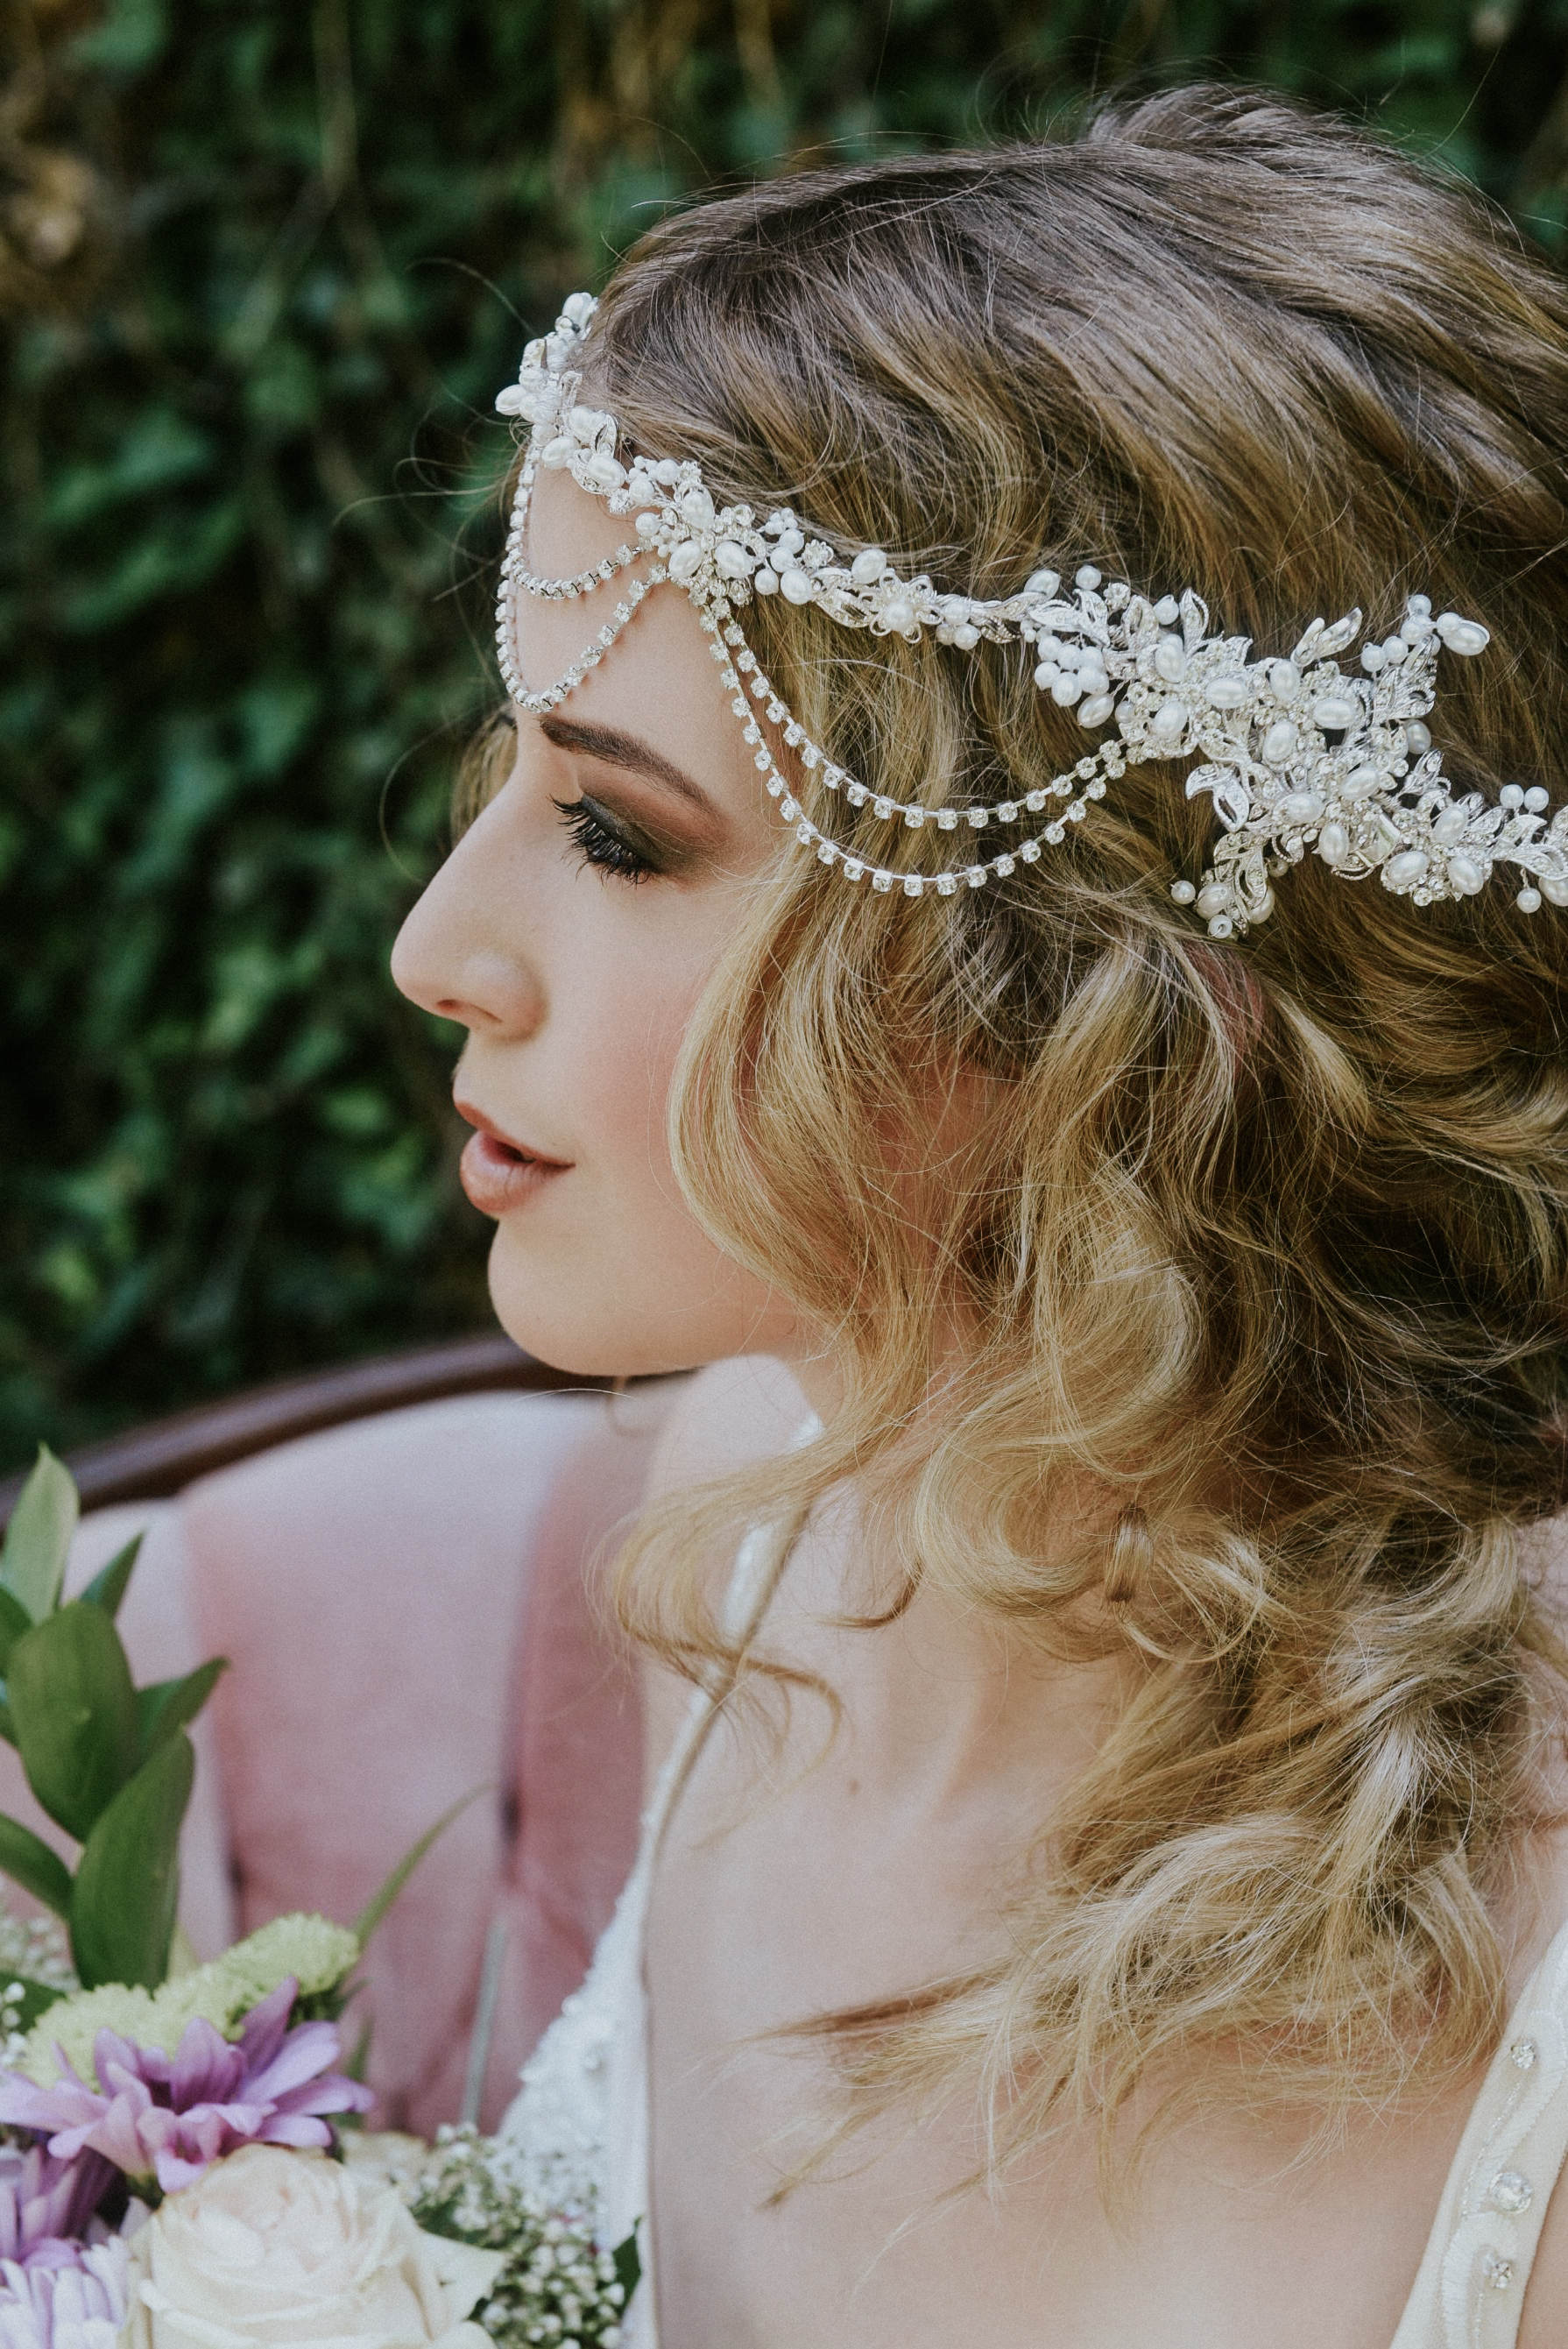 Pearl bridal headpiece braid hairstyle boho bride styled shoot by Wedding Photographer Julie Sawatzky Ontario Canada